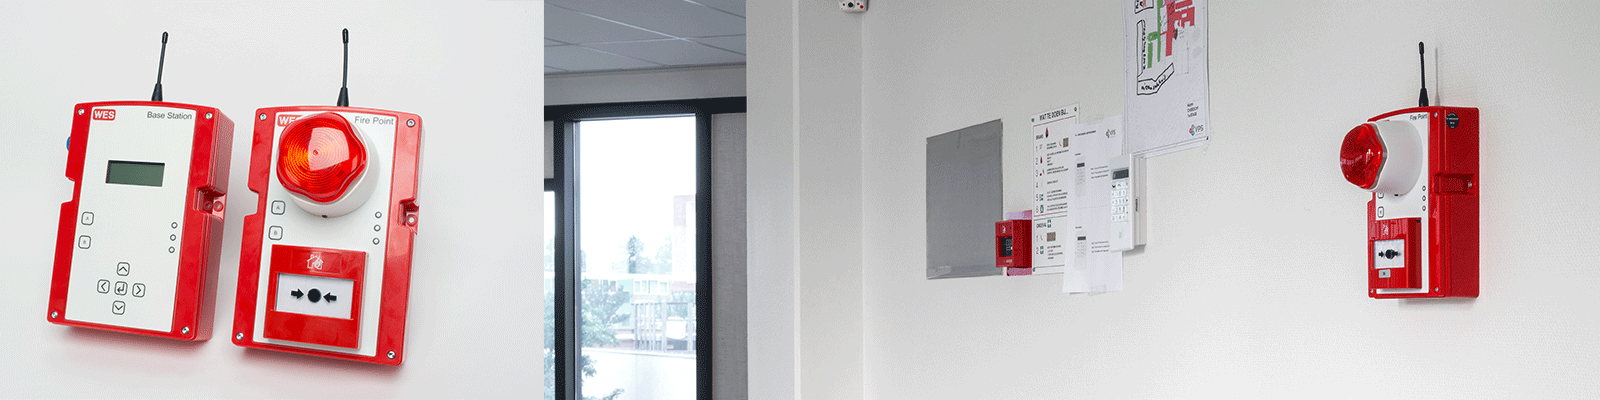 Vps Firealert Wes Construction Site Fire Safety Systems Installed